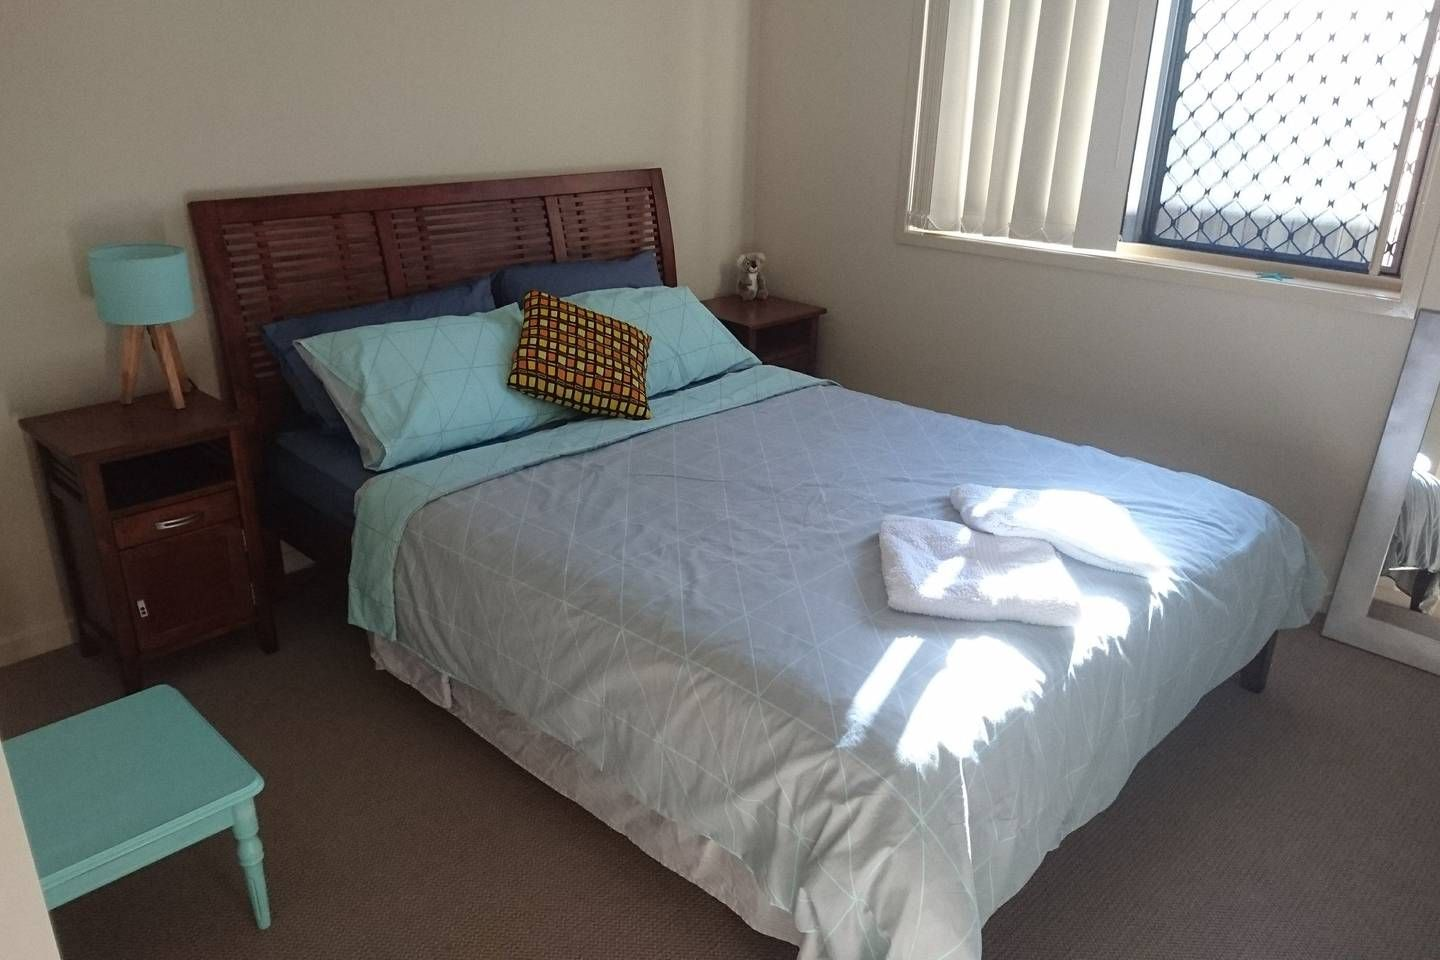 Cruisy Mudjimba Beach house. Perfect location! Houses